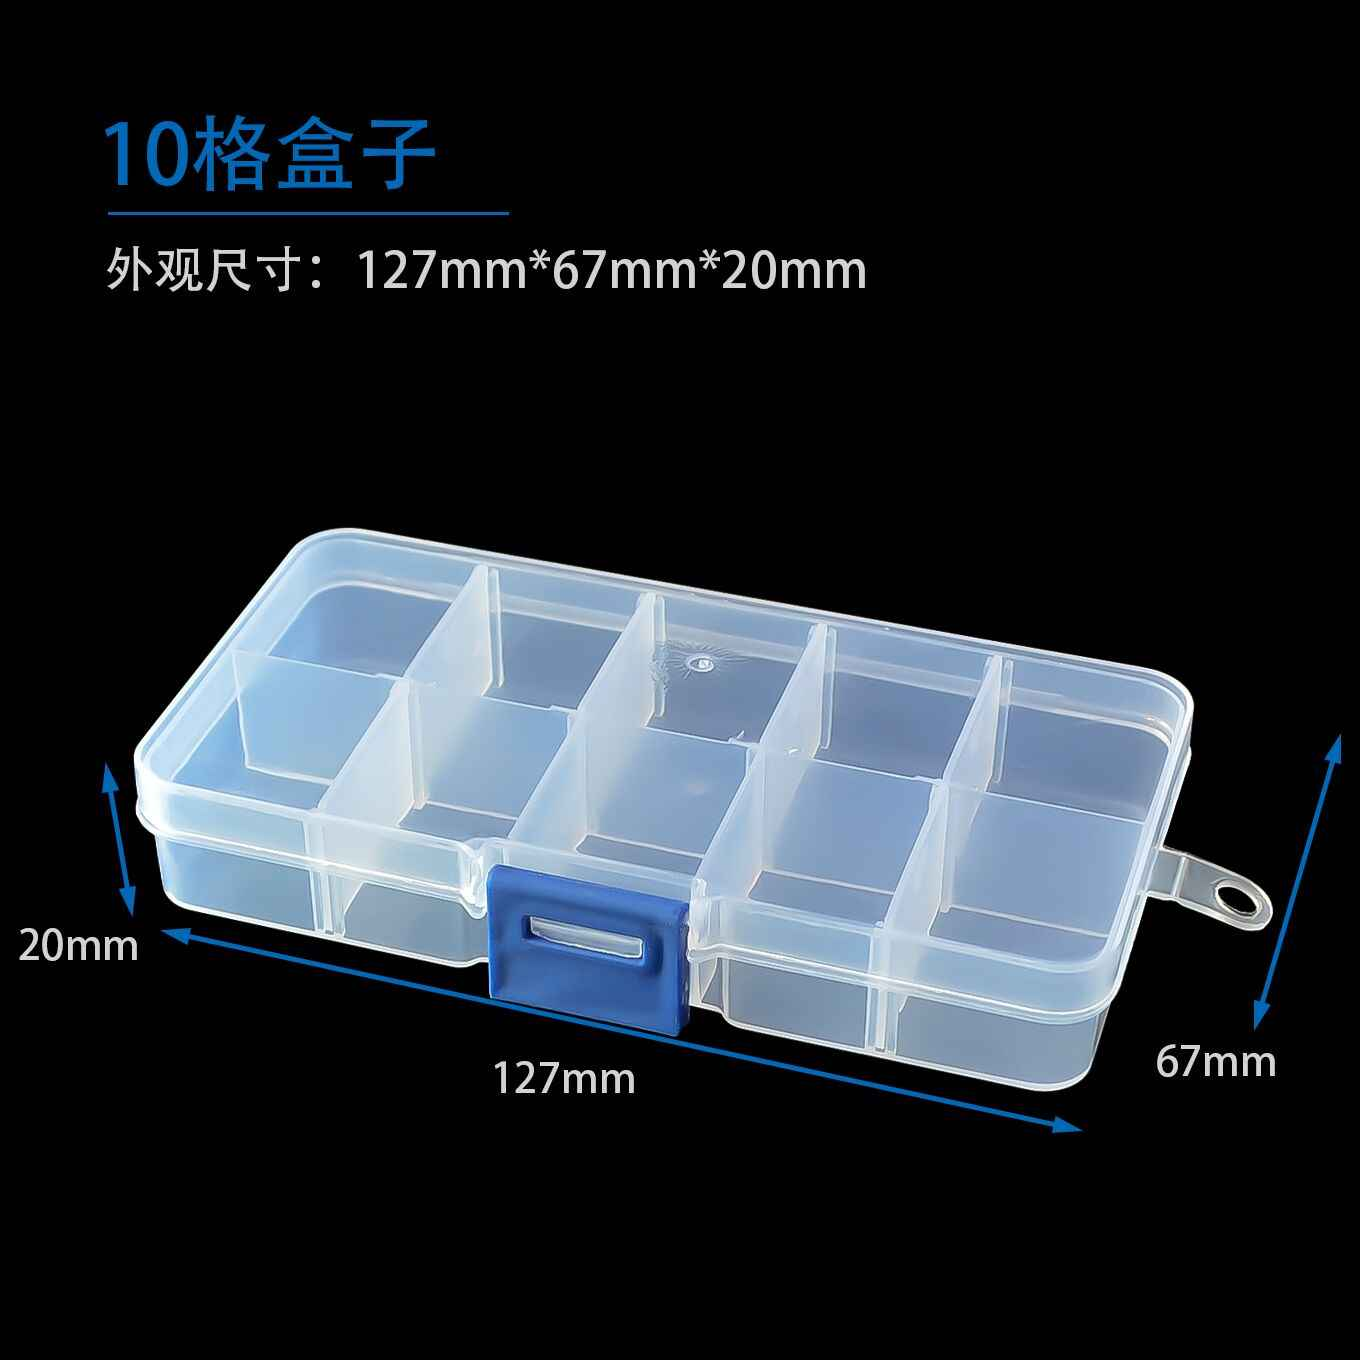 10 Grid can be remov transparent plastic small box kit storage box jewelry jewelry box electronic components parts finishing bo